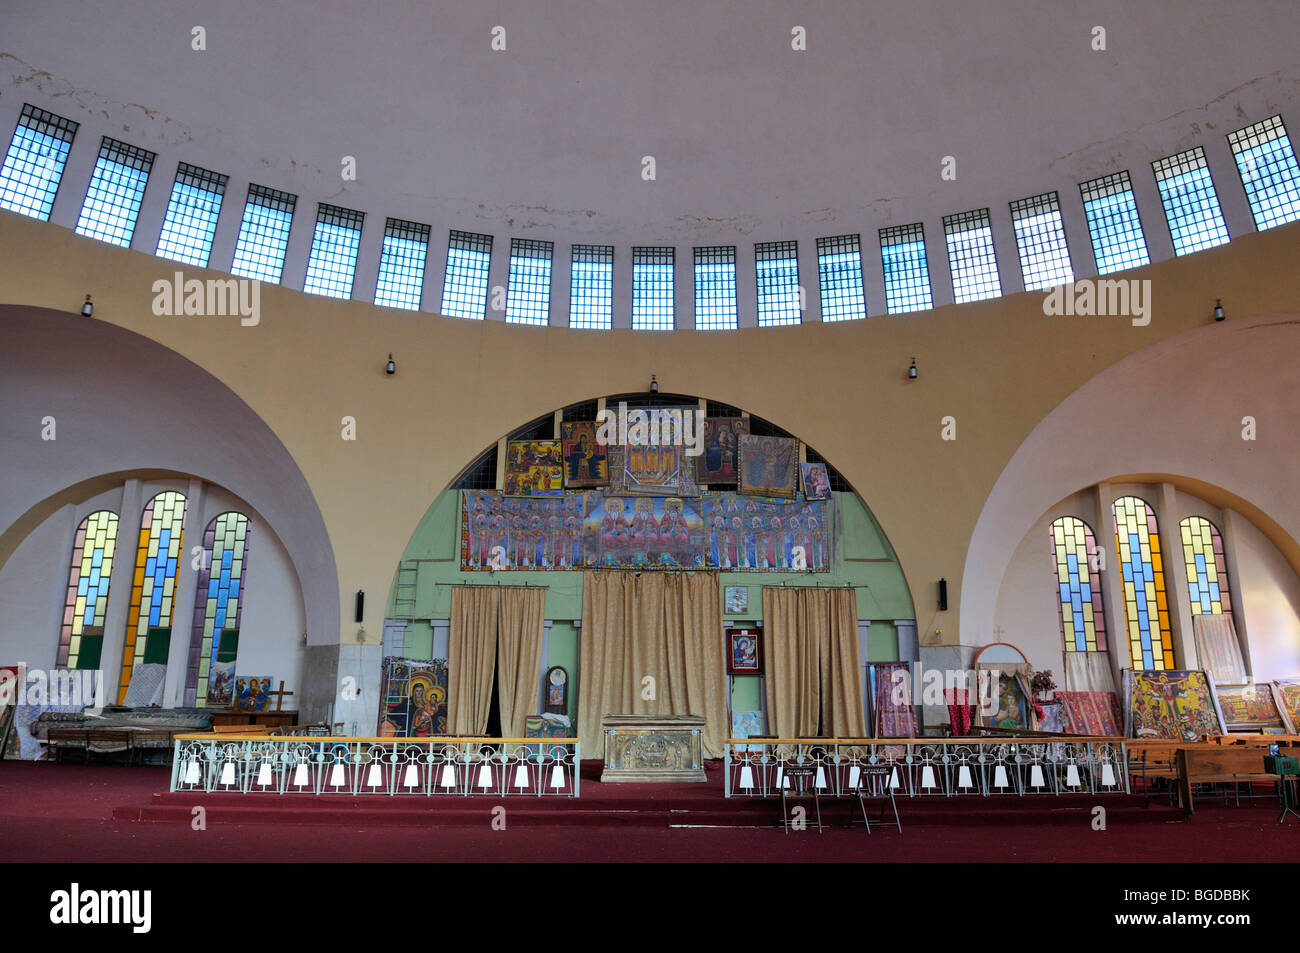 Interior of Saint Mary of Zion cathedral of the Ethiopian orthodox church at Aksum, Axum, Tigray, Ethiopia, Africa - Stock Image